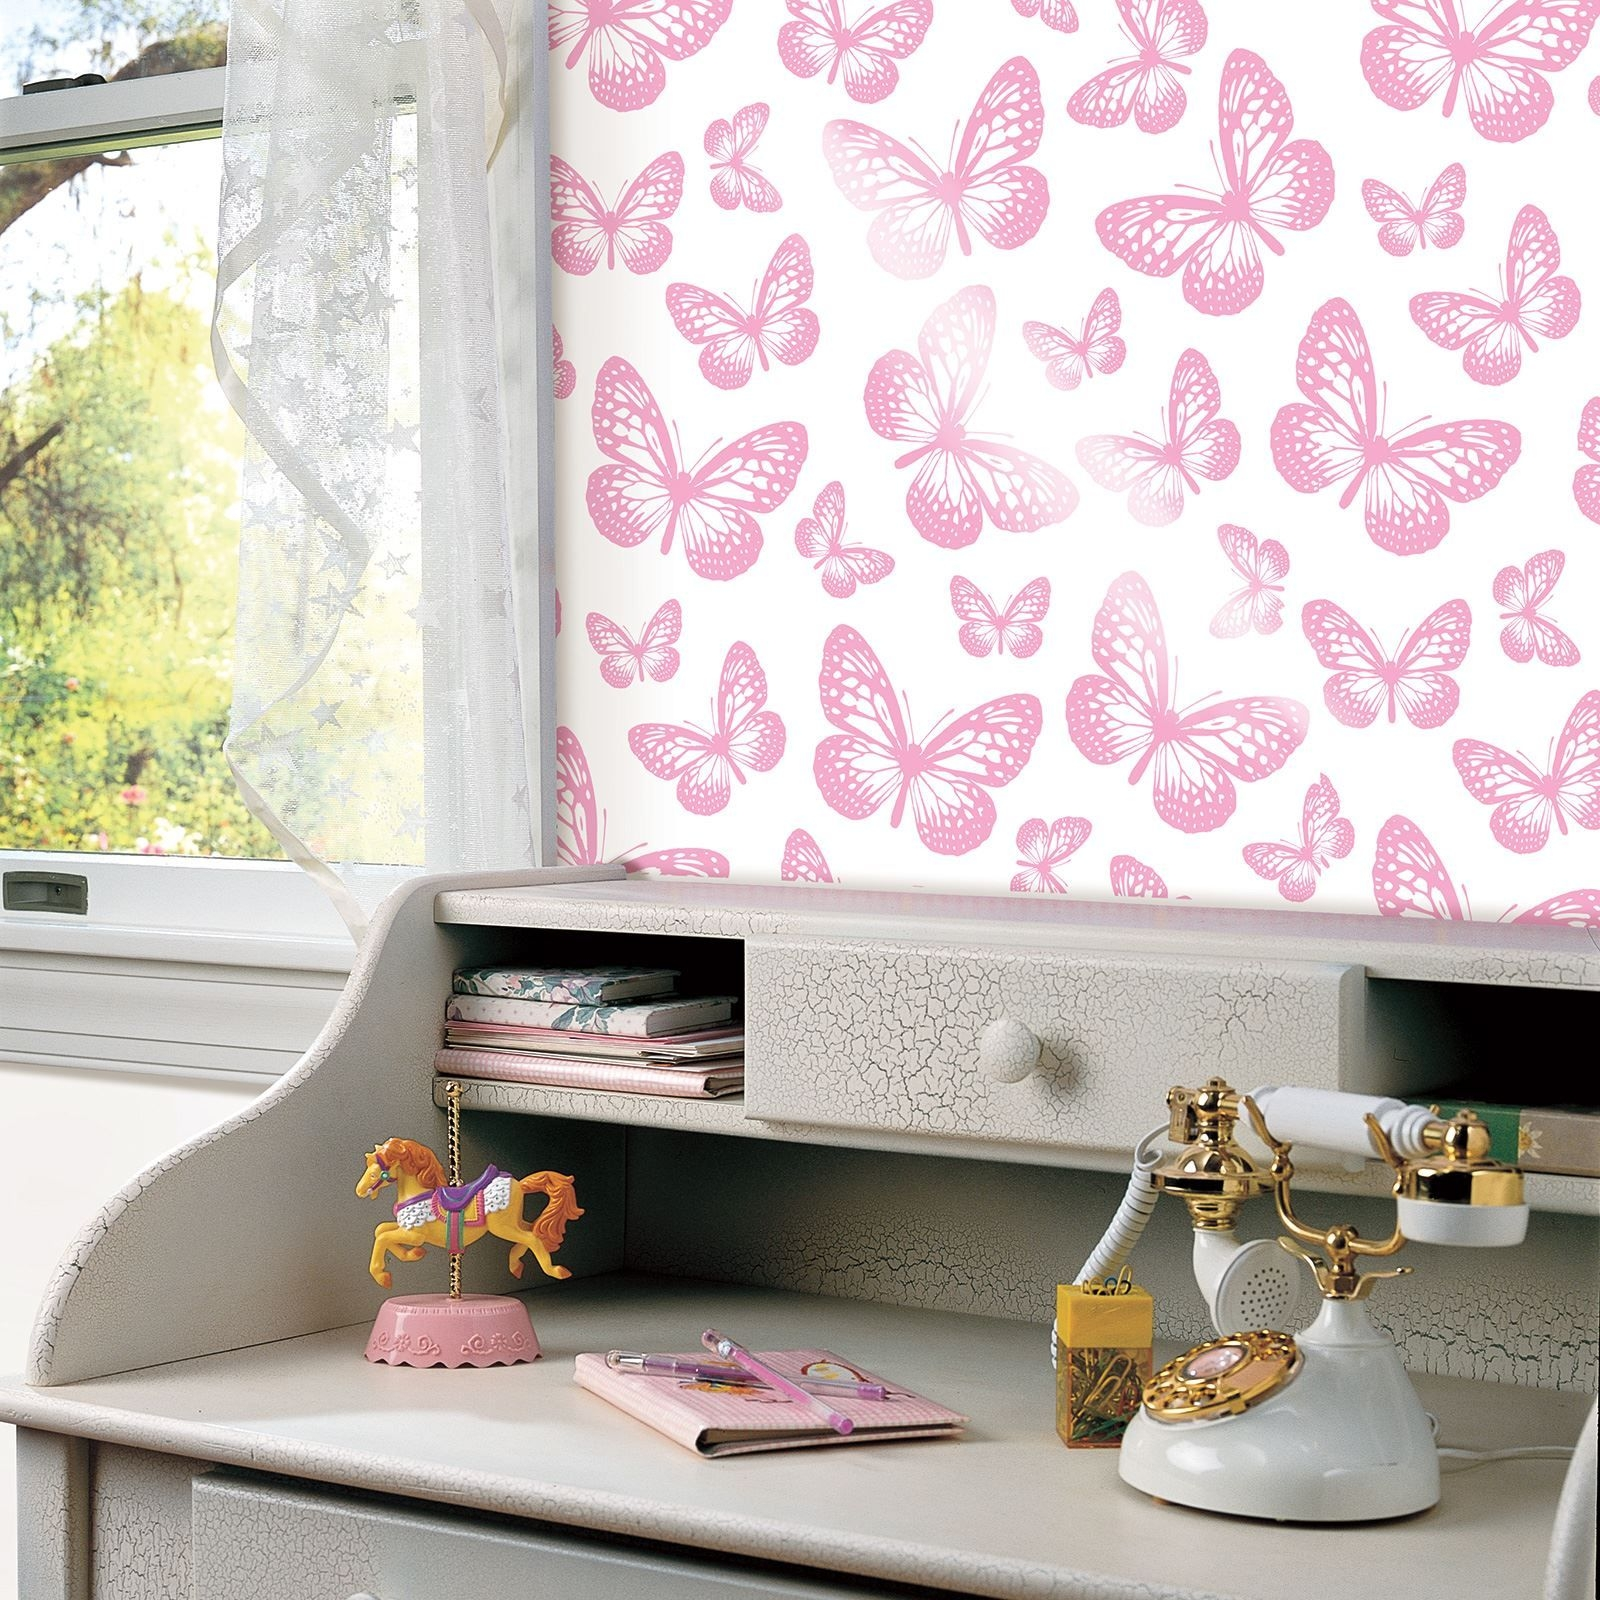 Butterfly Wallpaper Girls Bedroom Decor Pink White - Butterfly Wallpaper For Bedroom , HD Wallpaper & Backgrounds